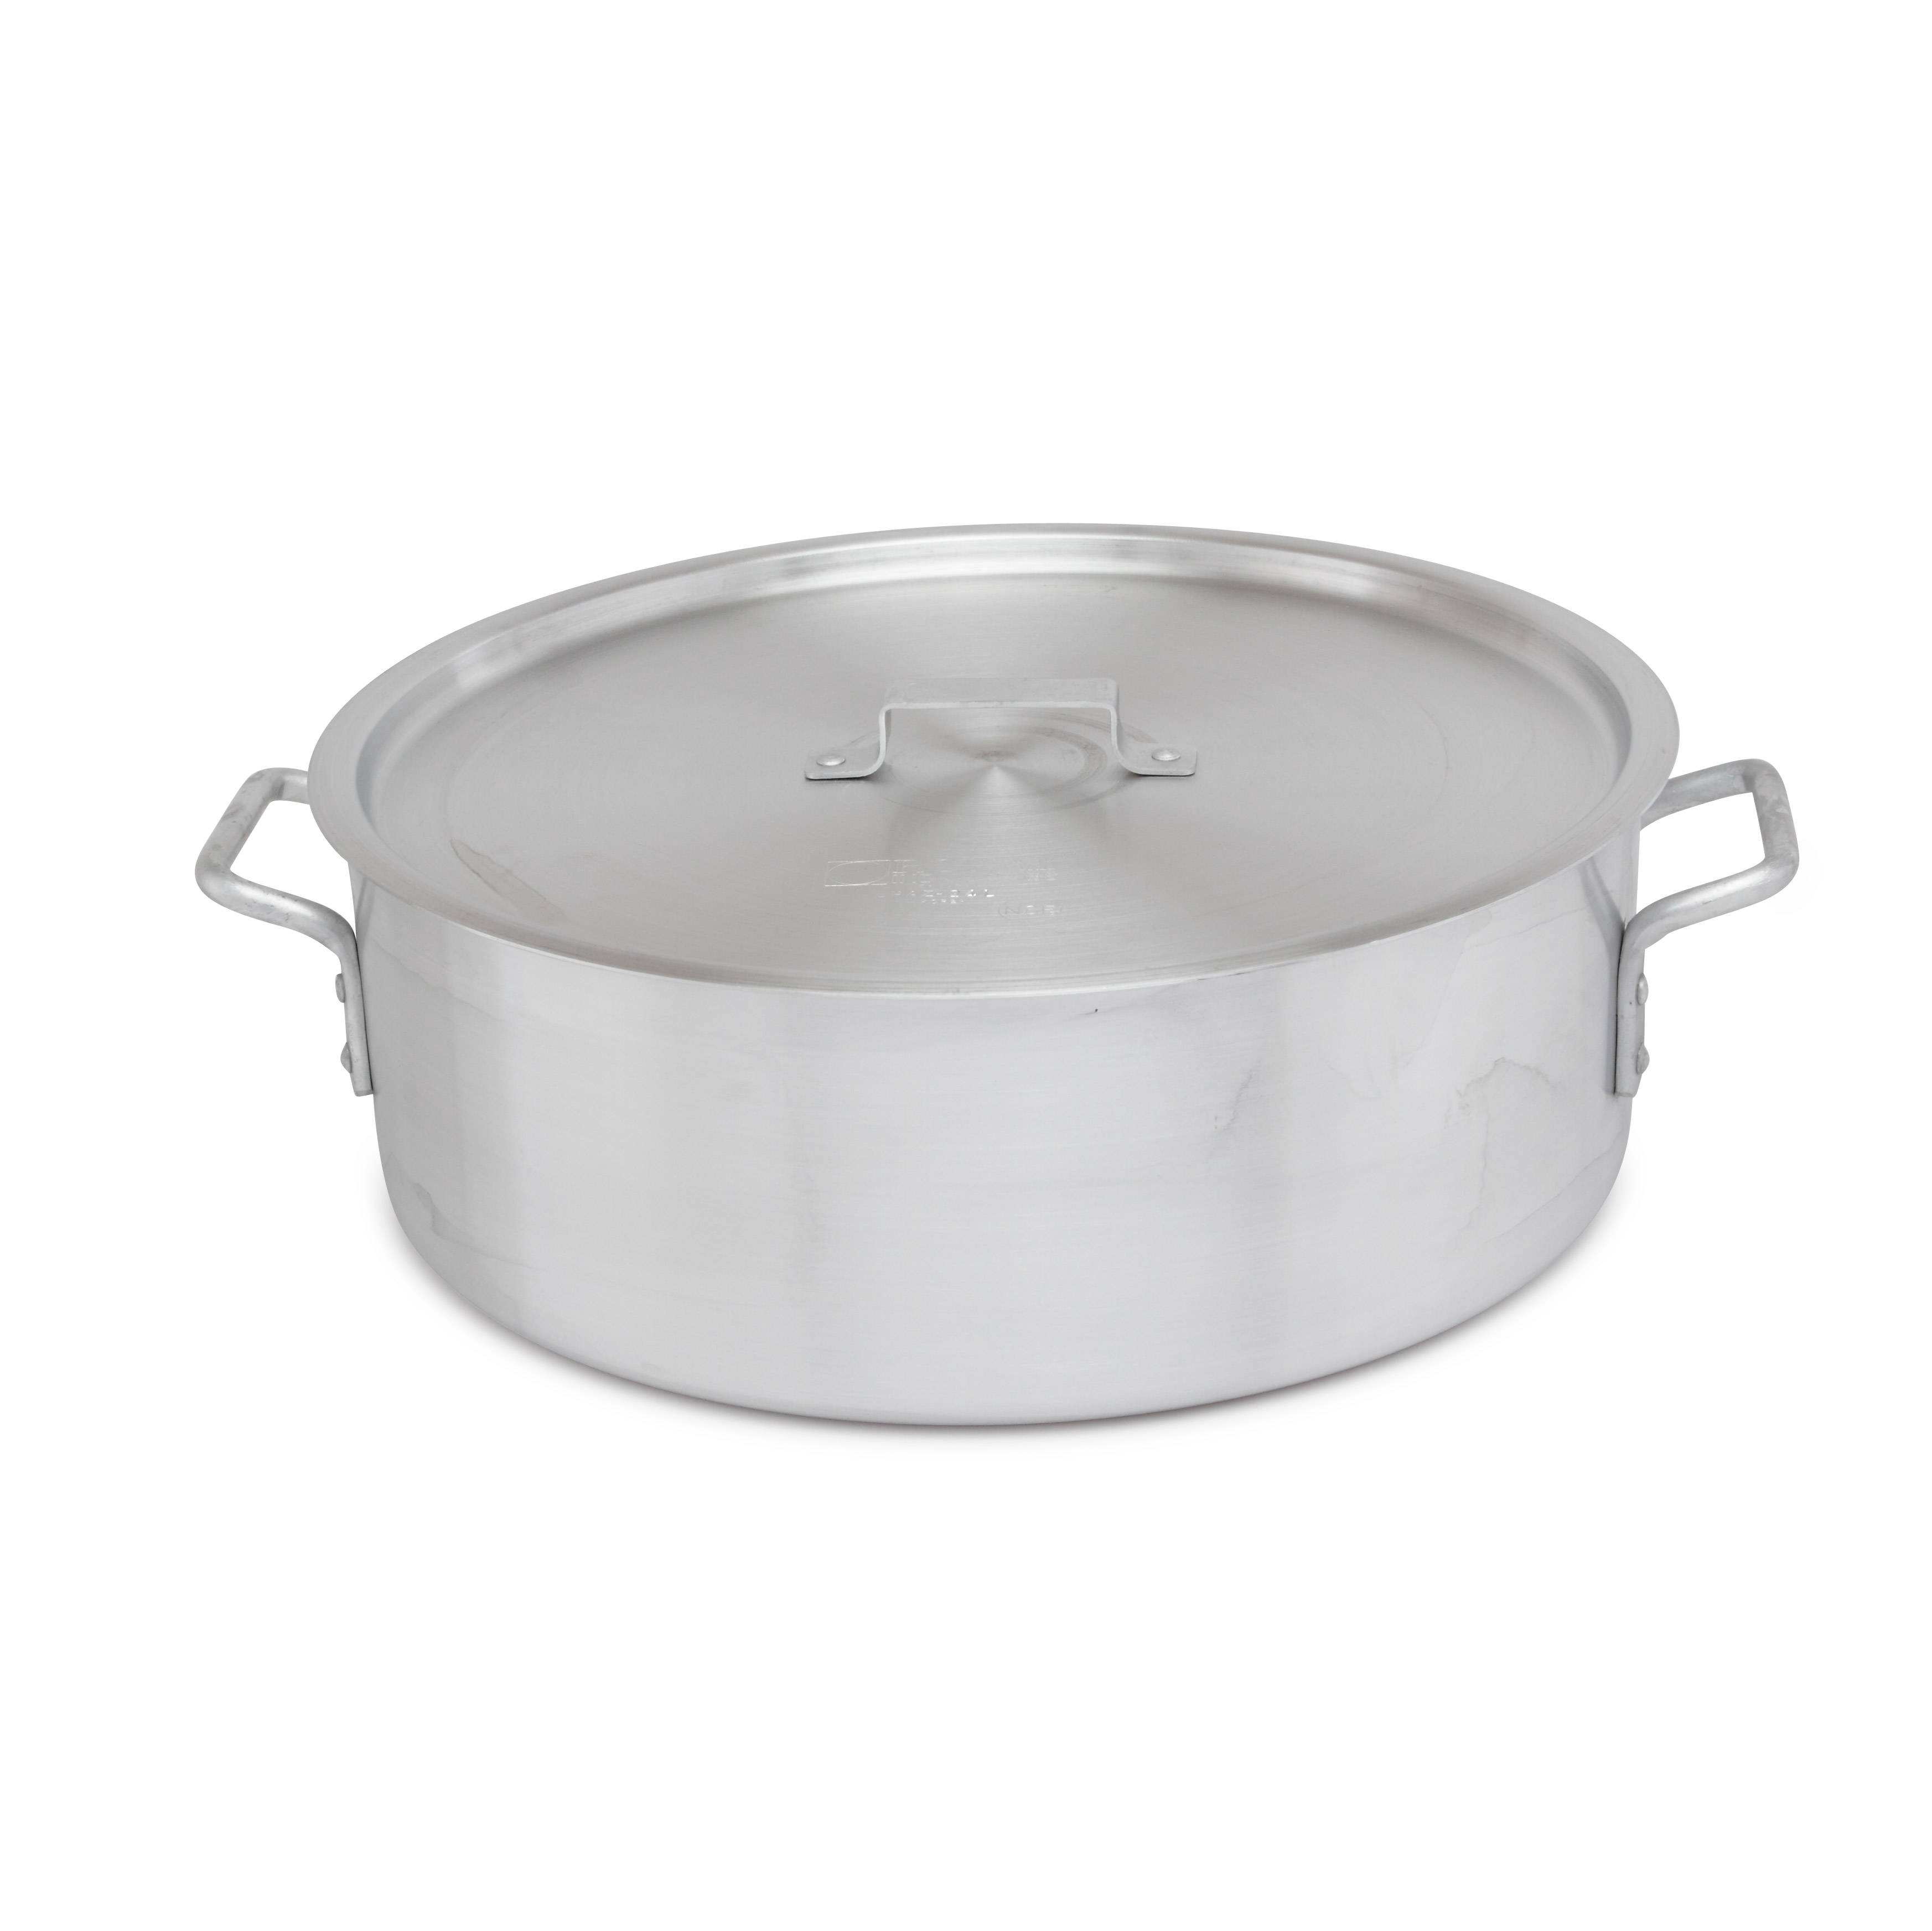 Royal Industries ROY BRAZ SW 24 brazier pan